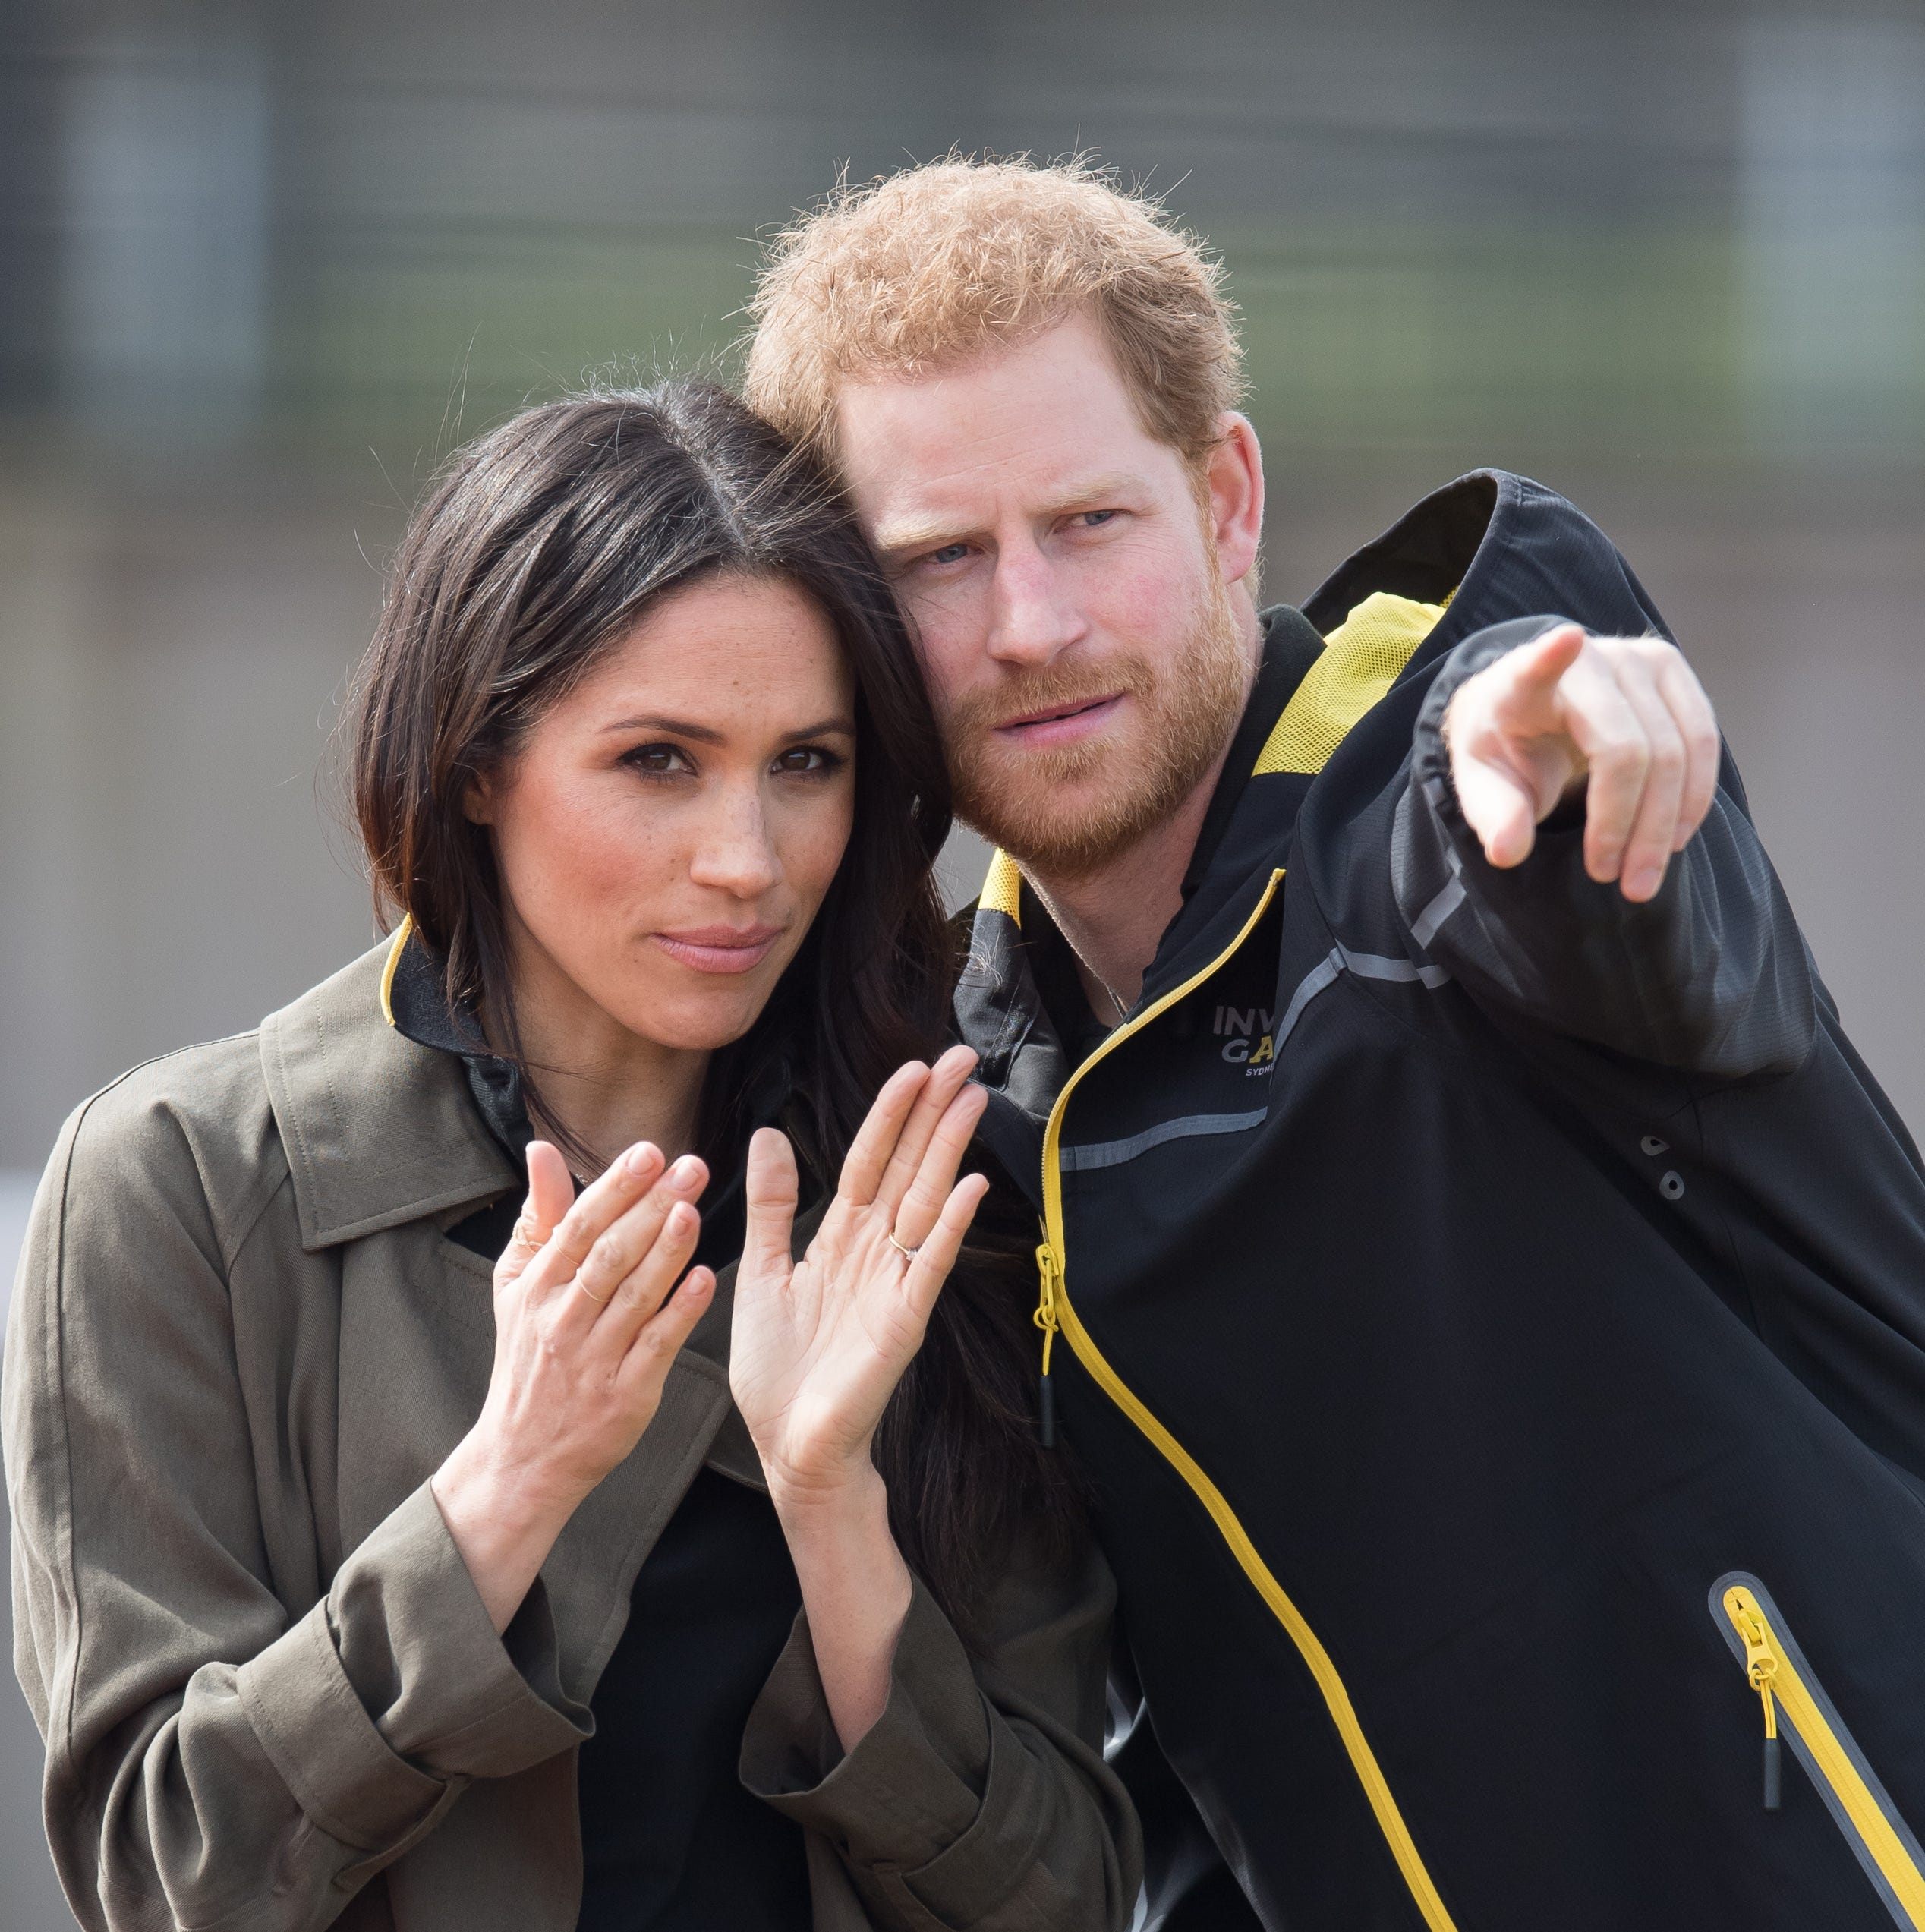 Prince Harry and Meghan Markle attend the UK Team Trials for the Invictus Games Sydney 2018 at University of Bath on April 6 in England.